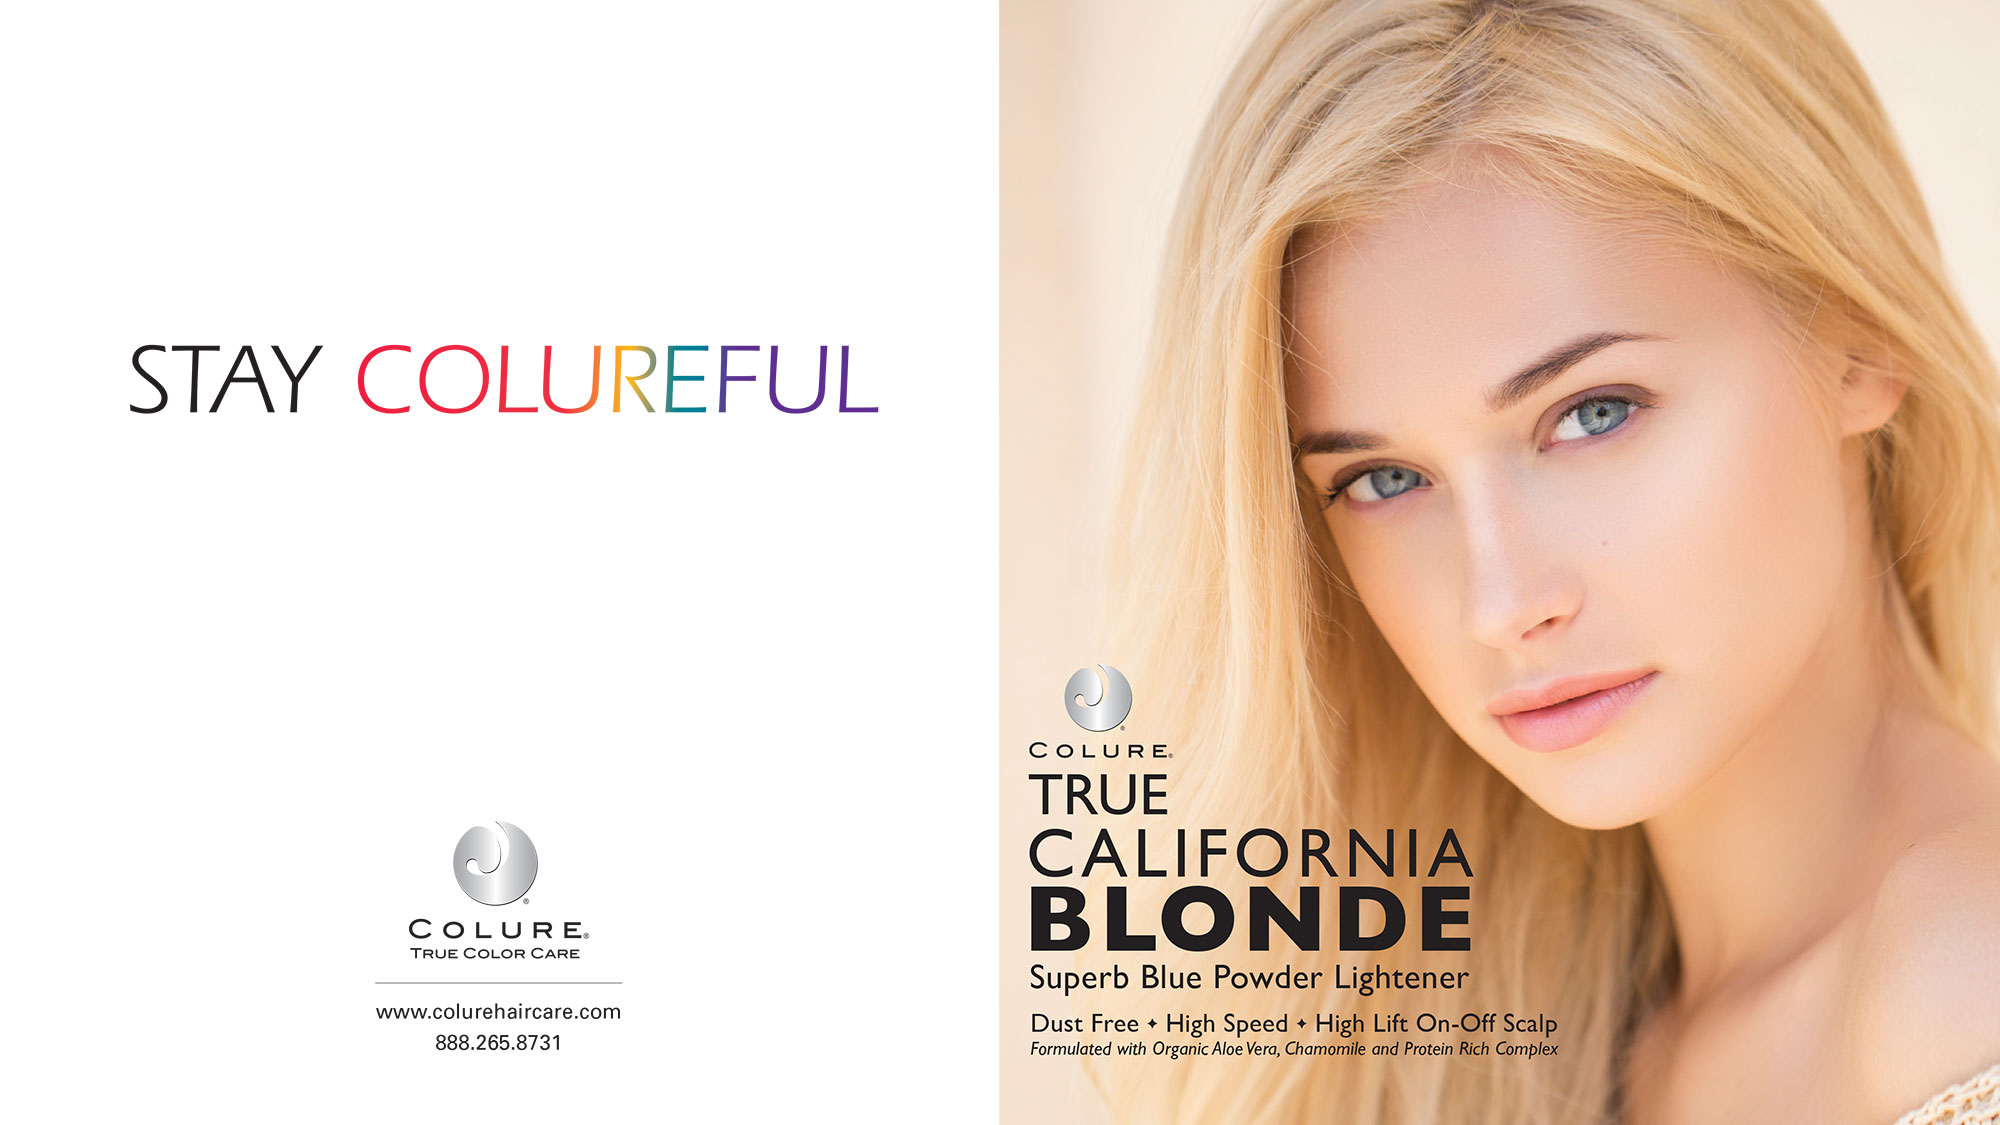 COLURE Blonde Brochure outside